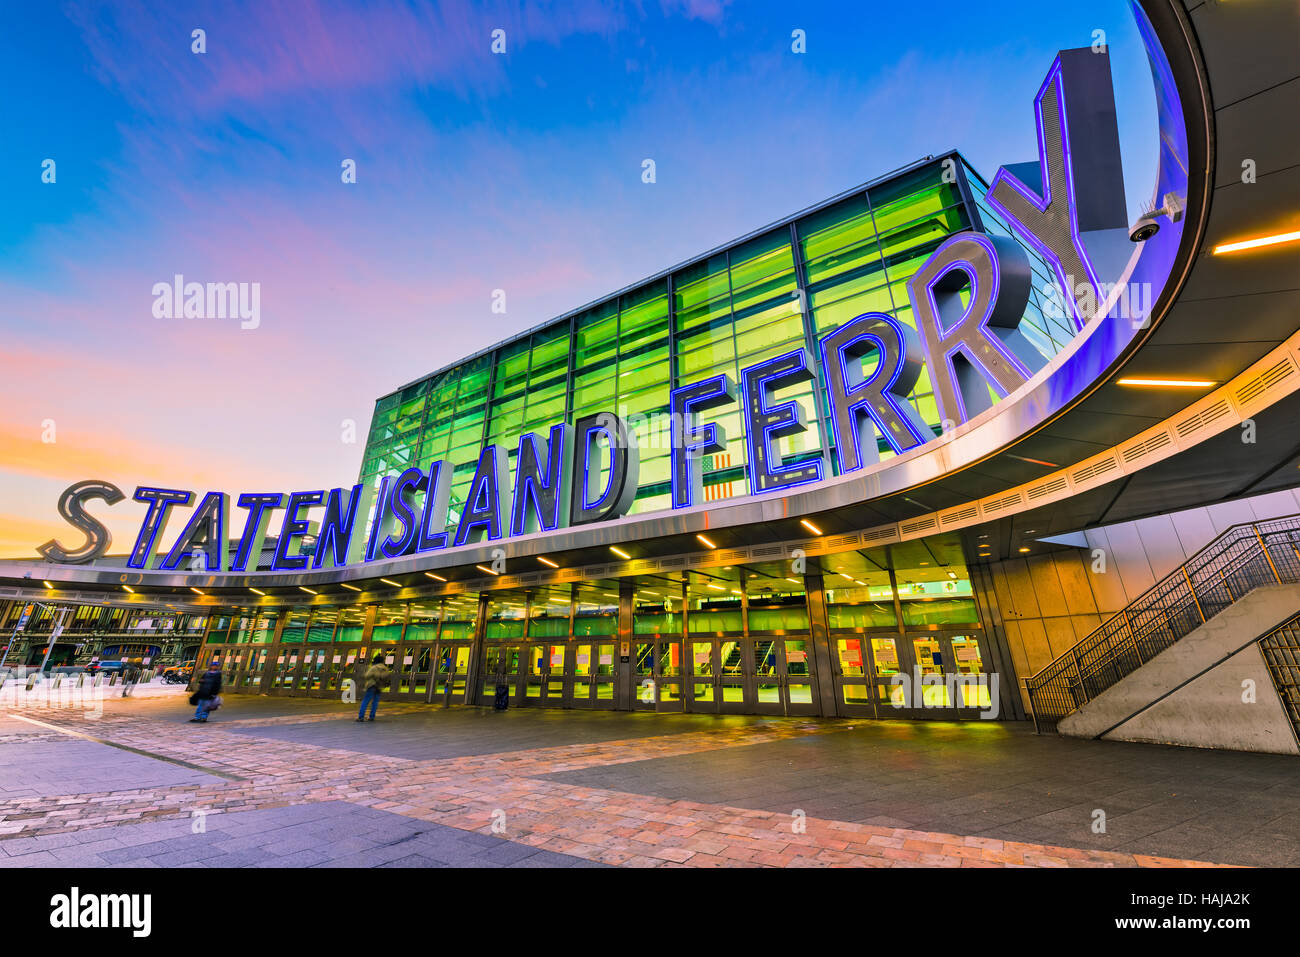 NEW YORK CITY - OCTOBER 29, 2016: The Staten Island Ferry terminal in Lower Manhattan. - Stock Image